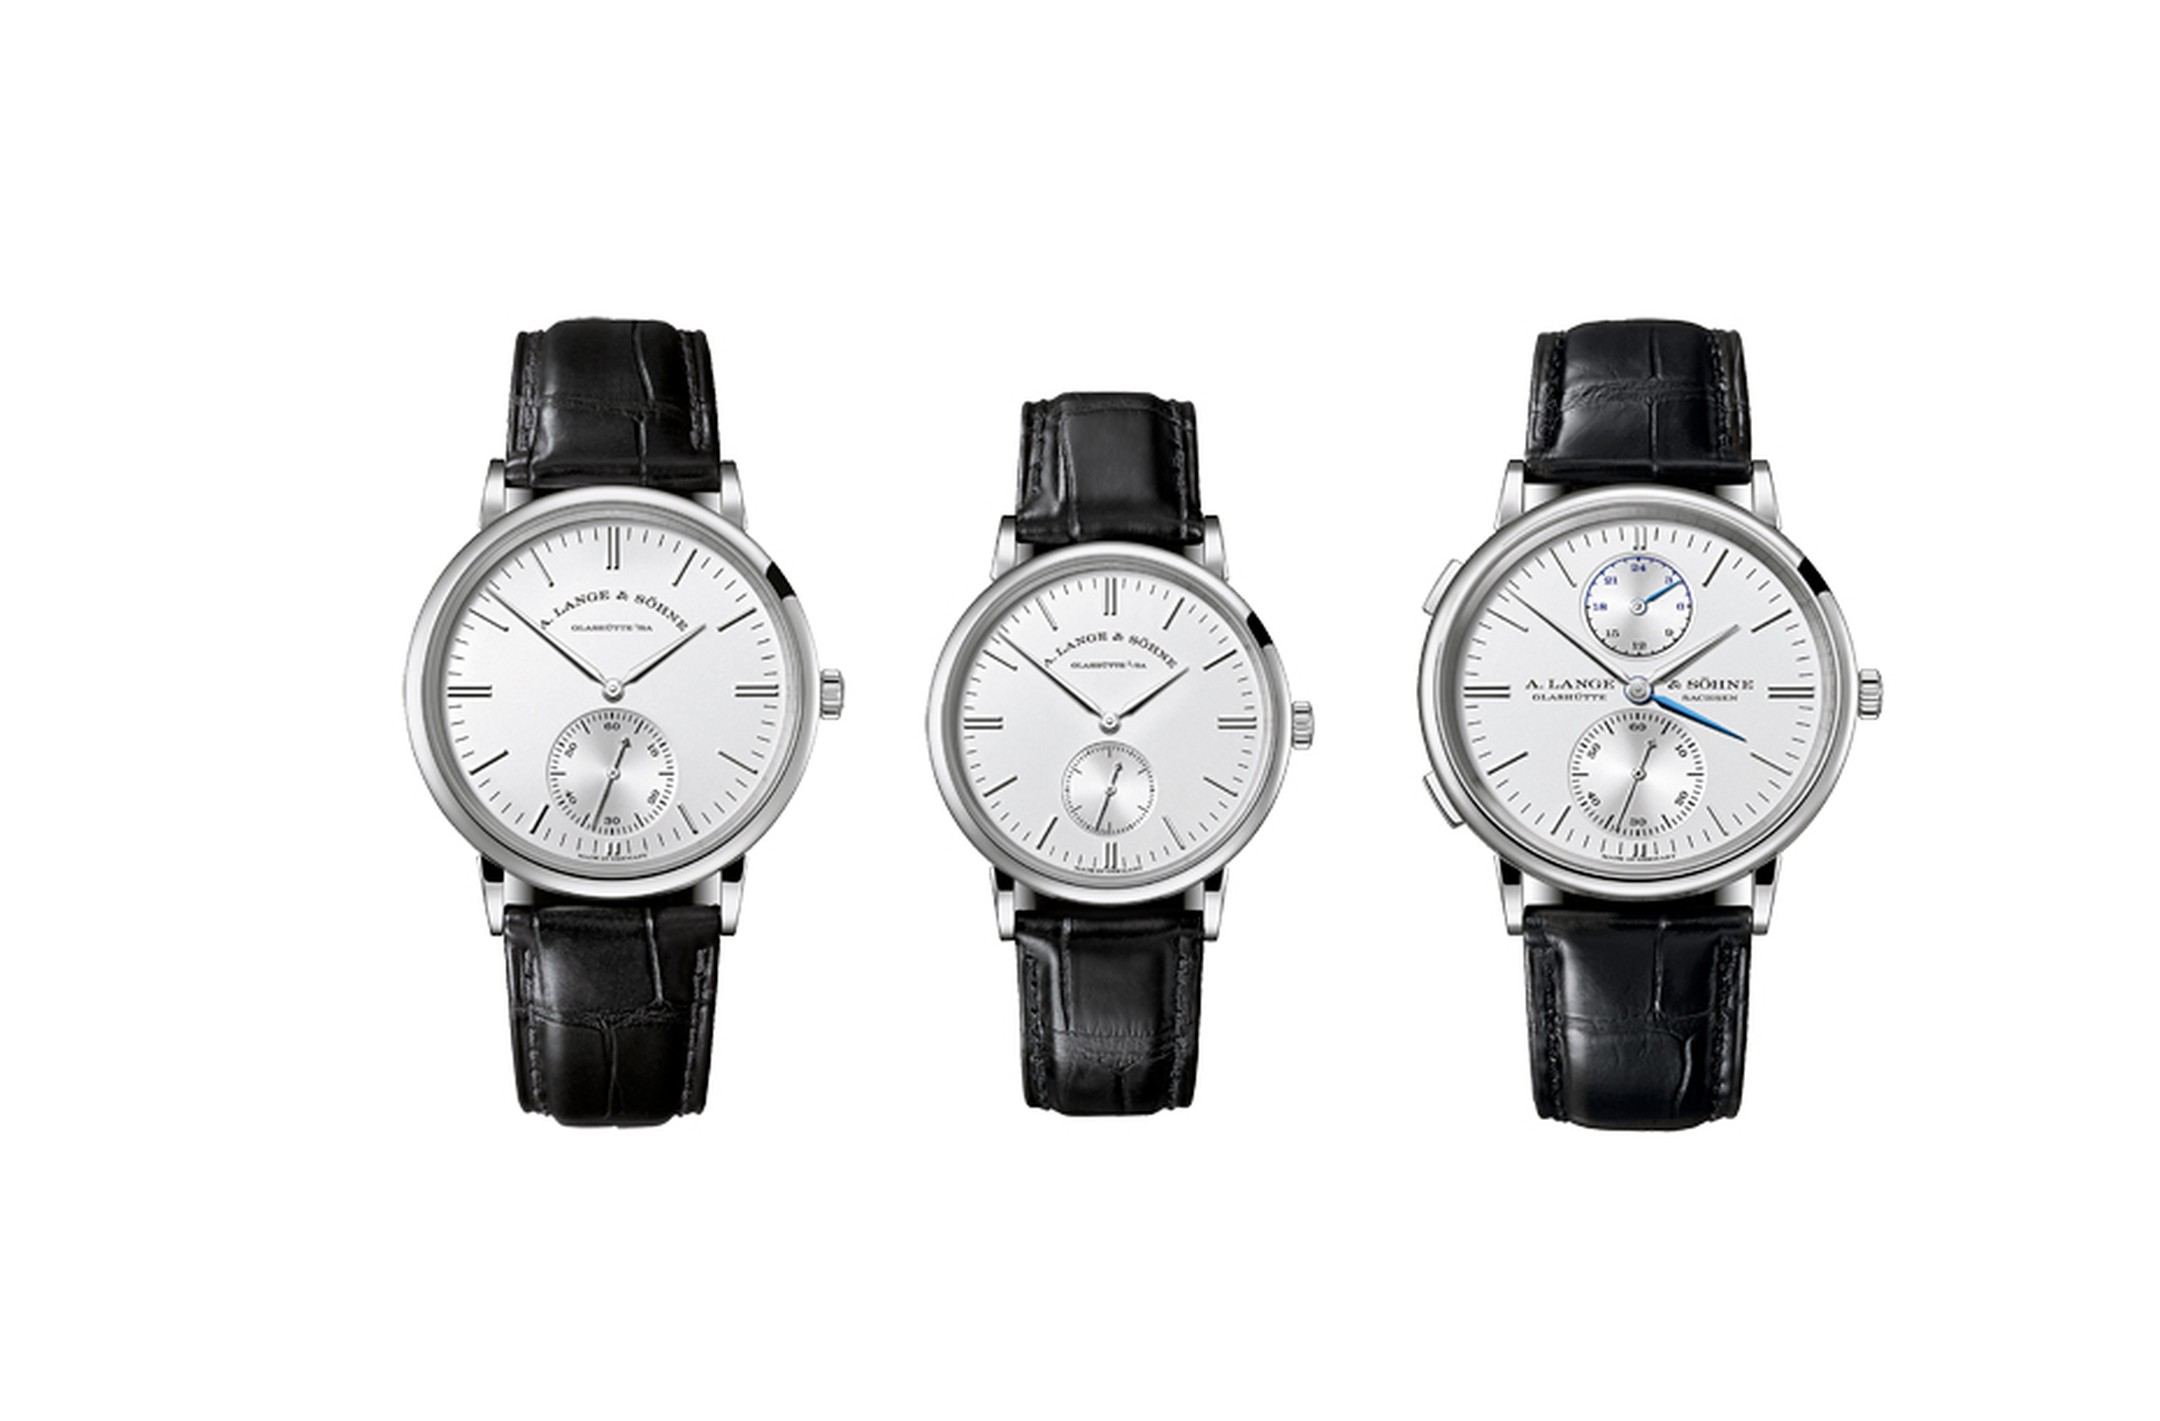 All three models of the Saxonia family are available in rose or white gold cases.